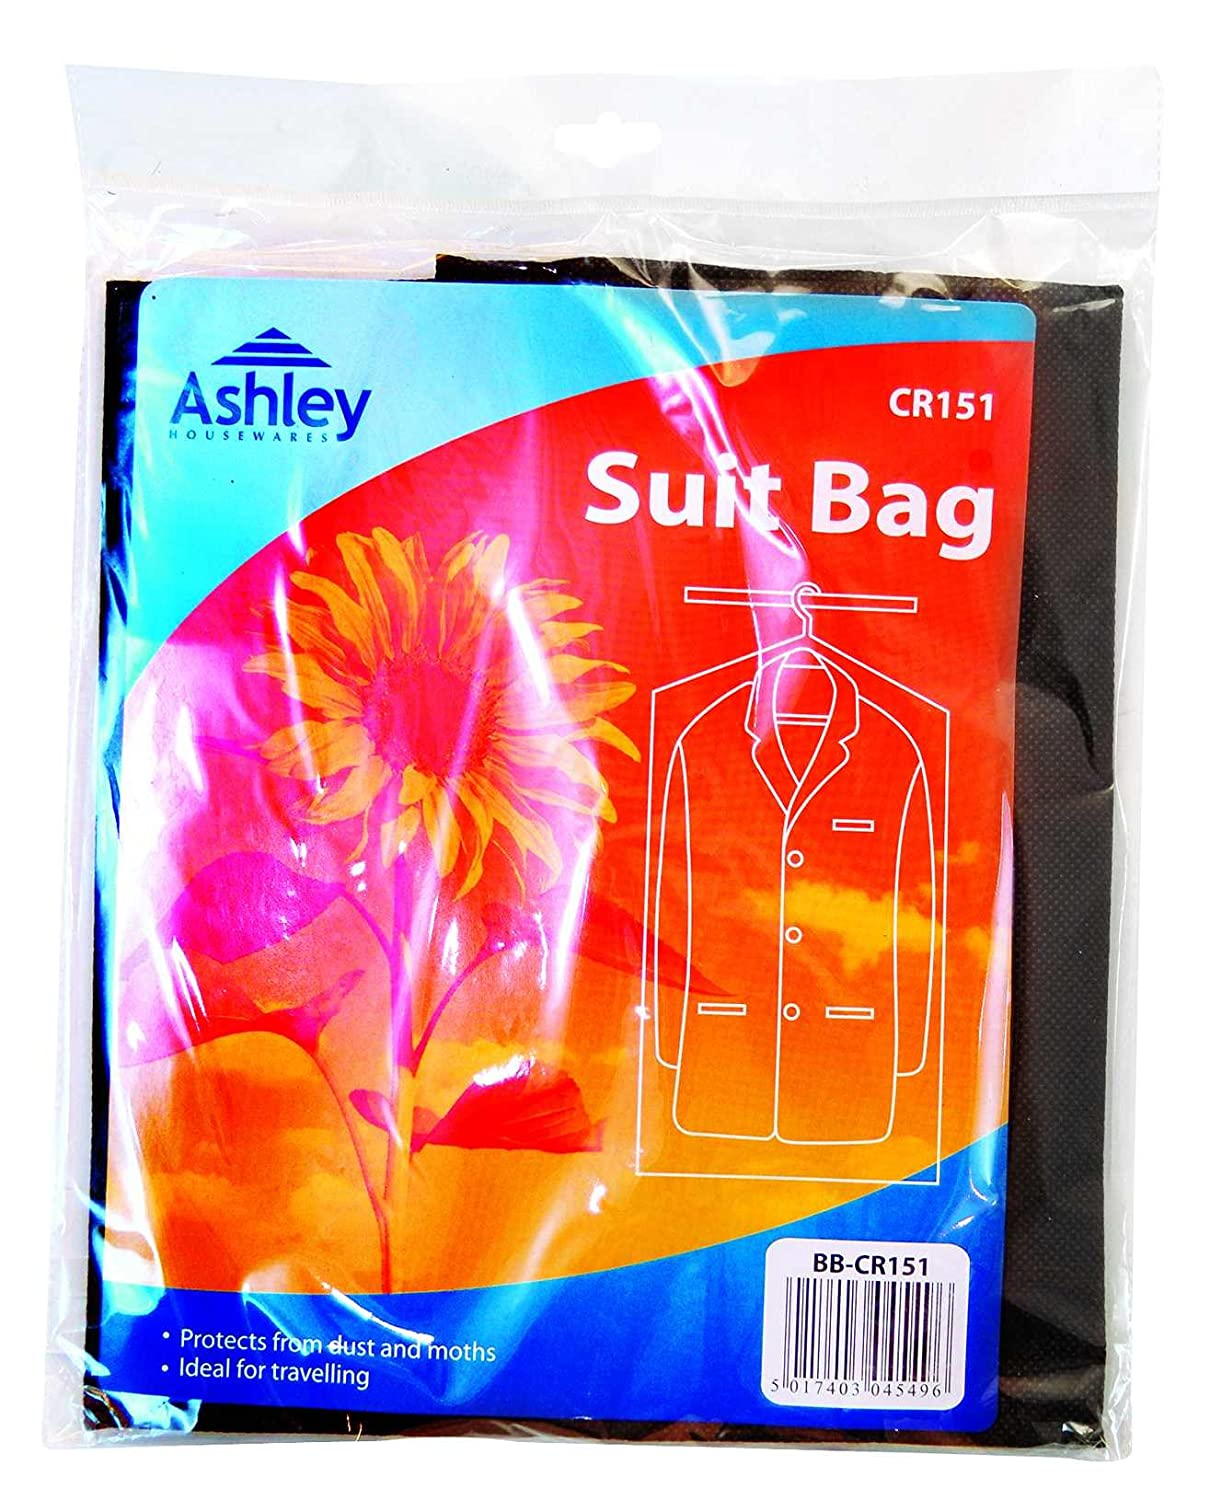 Suit Protector Bag, Protects Against Dust And Moths, Ideal For Travelling Ashley Housewares CR151